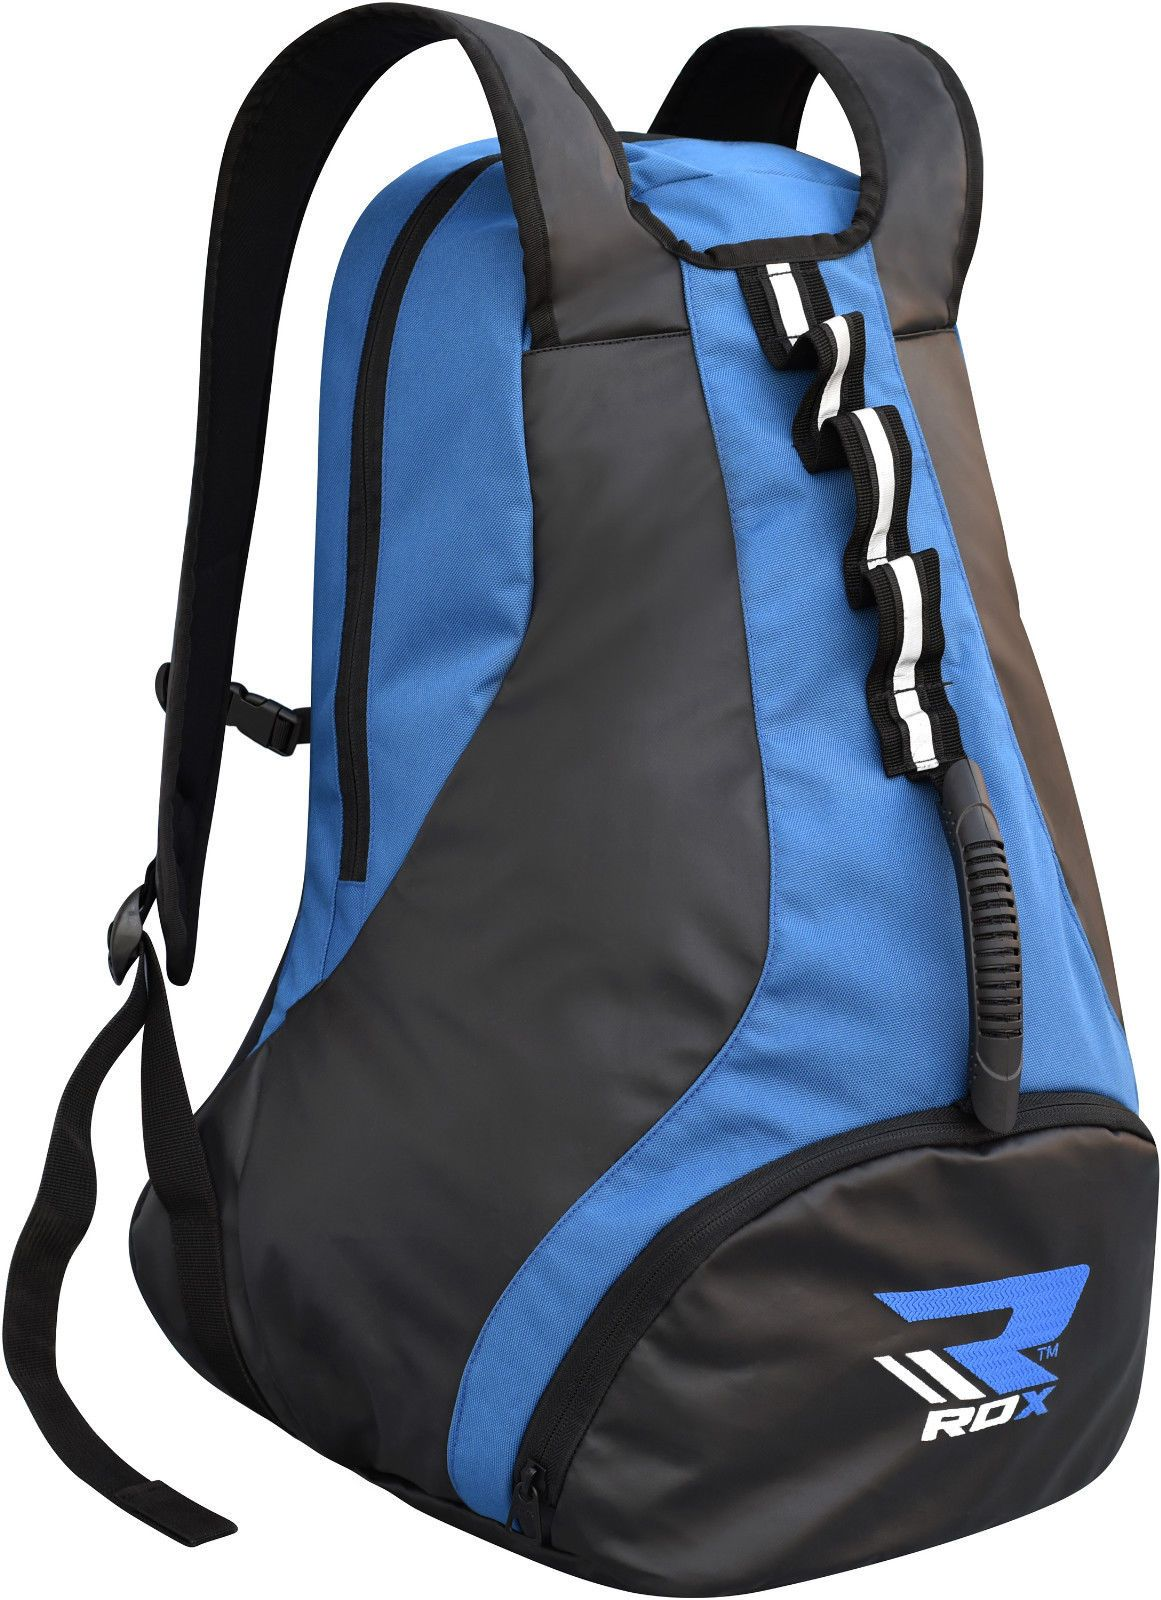 RDX Kit Bag